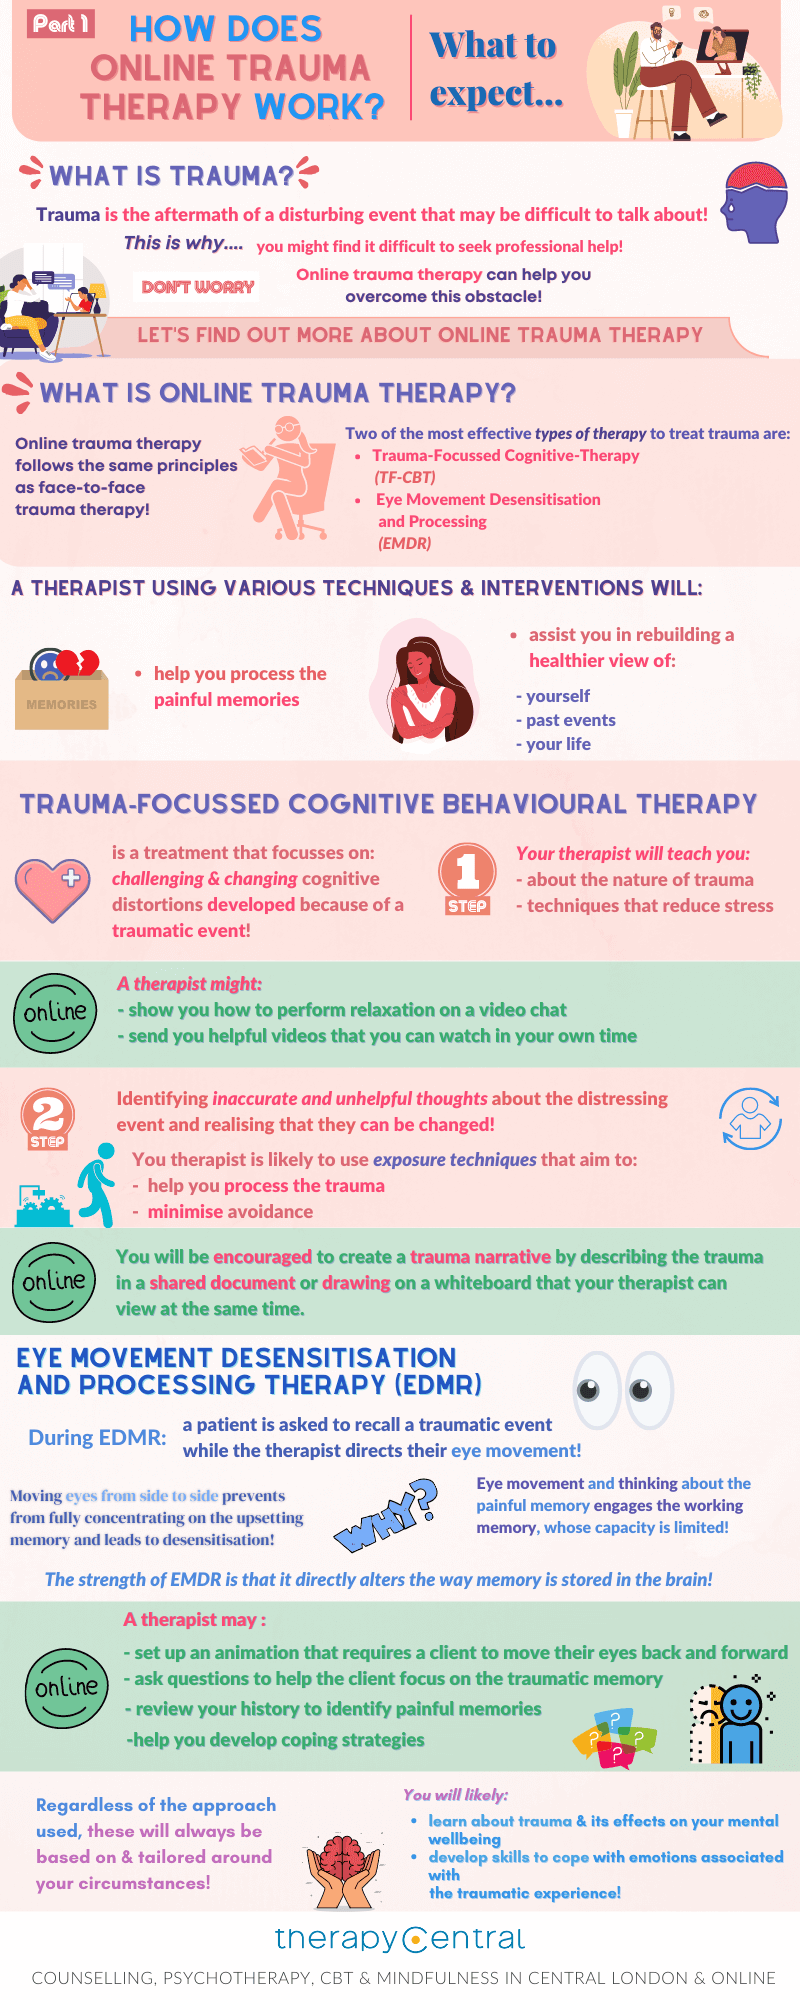 Infographic online trauma therapy how does it work - Part 1